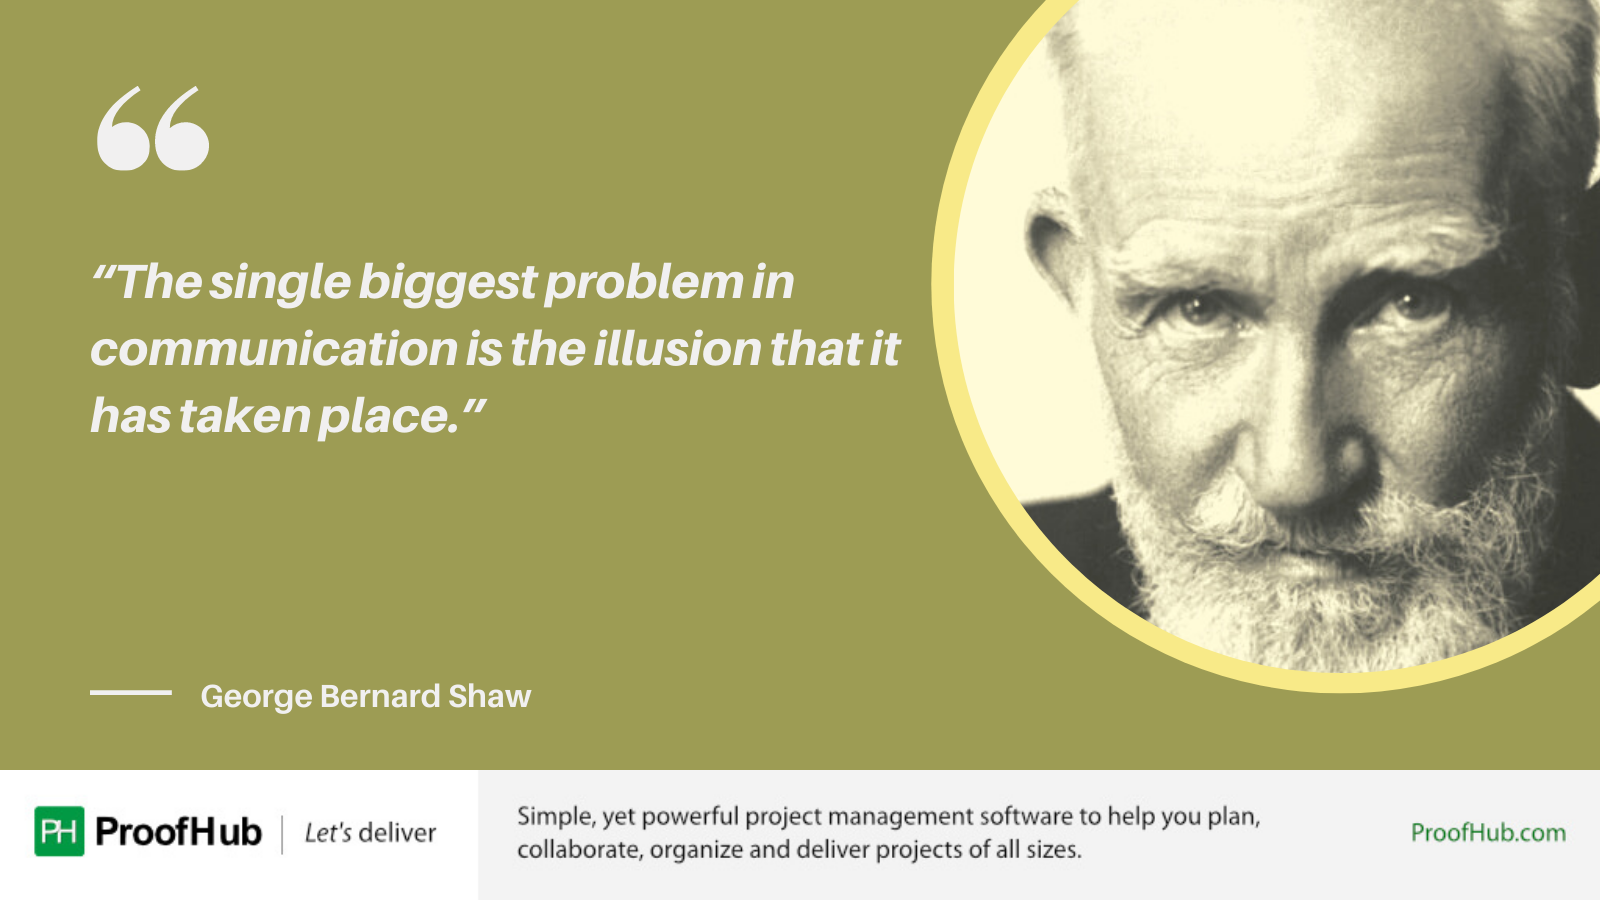 The single biggest problem in communication is the illusion that it has taken place Quote by George Bernard Shaw